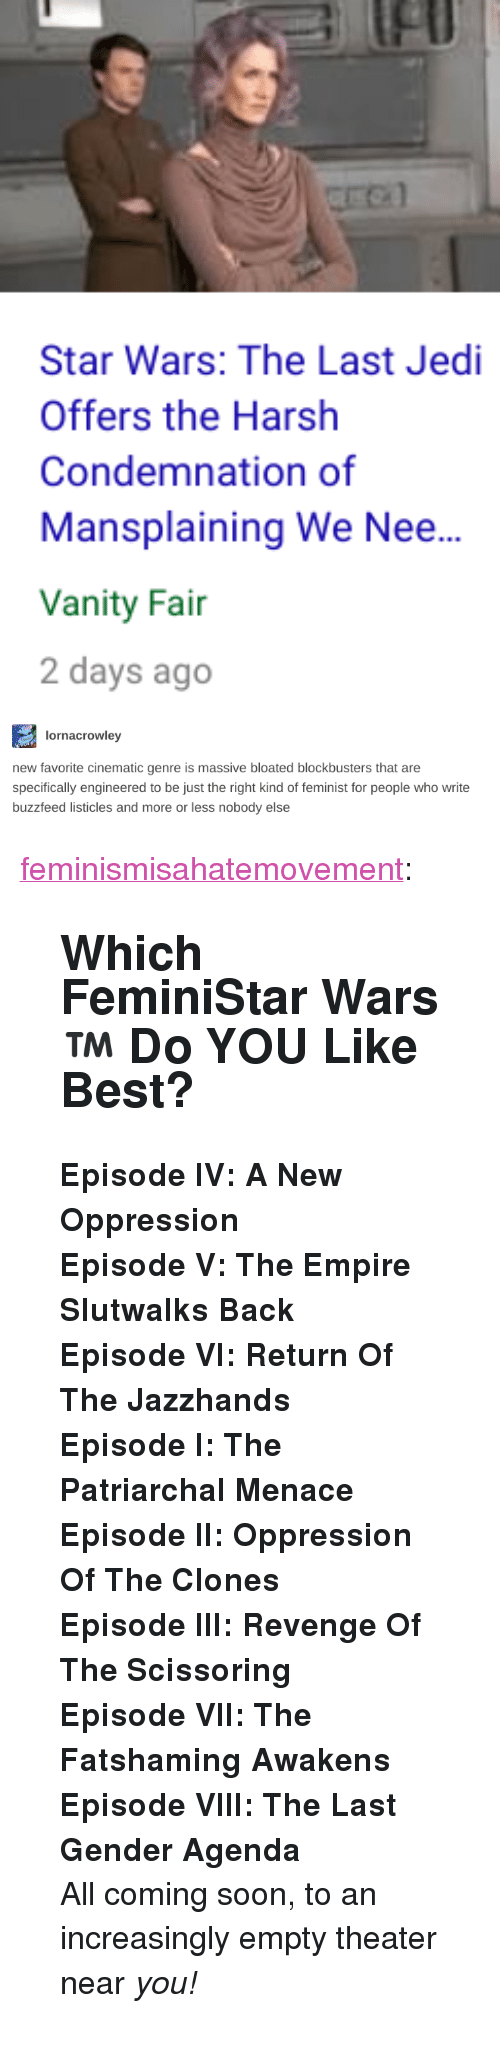 """Empire, Jedi, and Revenge: fl  Star Wars: The Last Jedi  Offers the Harsh  Condemnation of  Mansplaining We Nee...  Vanity Fai  2 days ago   lornacrowley  new favorite cinematic genre is massive bloated blockbusters that are  specifically engineered to be just the right kind of feminist for people who write  buzzfeed listicles and more or less nobody else <p><a href=""""http://feminismisahatemovement.tumblr.com/post/168692515648/which-feministar-wars-do-you-like-best"""" class=""""tumblr_blog"""">feminismisahatemovement</a>:</p>  <blockquote><h2><b>Which FeminiStar Wars™   Do YOU Like Best?<br/></b></h2><p><b>Episode IV: A New Oppression</b></p><p><b>Episode V: The Empire Slutwalks Back</b></p><p><b>Episode VI: Return Of The Jazzhands</b></p><p><b>Episode I: The Patriarchal Menace</b></p><p><b>Episode II: Oppression Of The Clones<br/></b></p><p><b>Episode III: Revenge Of The Scissoring</b></p><p><b>Episode VII: The Fatshaming Awakens</b></p><p><b>Episode VIII: The Last Gender Agenda<br/></b></p><p>All coming soon, to an increasingly empty theater near <i>you!</i><br/></p></blockquote>"""